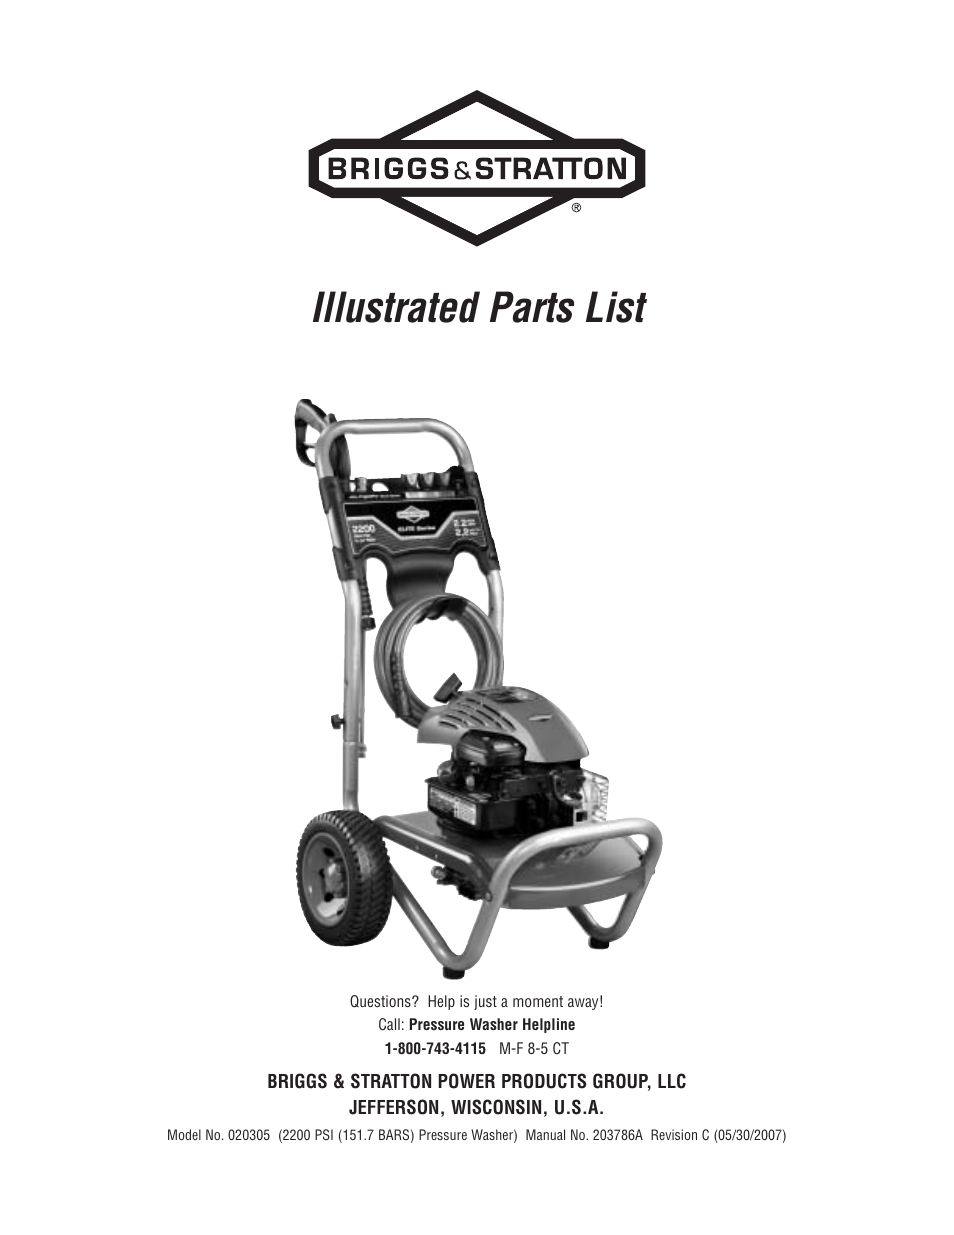 Briggs Stratton 20305 User Manual 3 Pages And Engine Diagram Parts List For